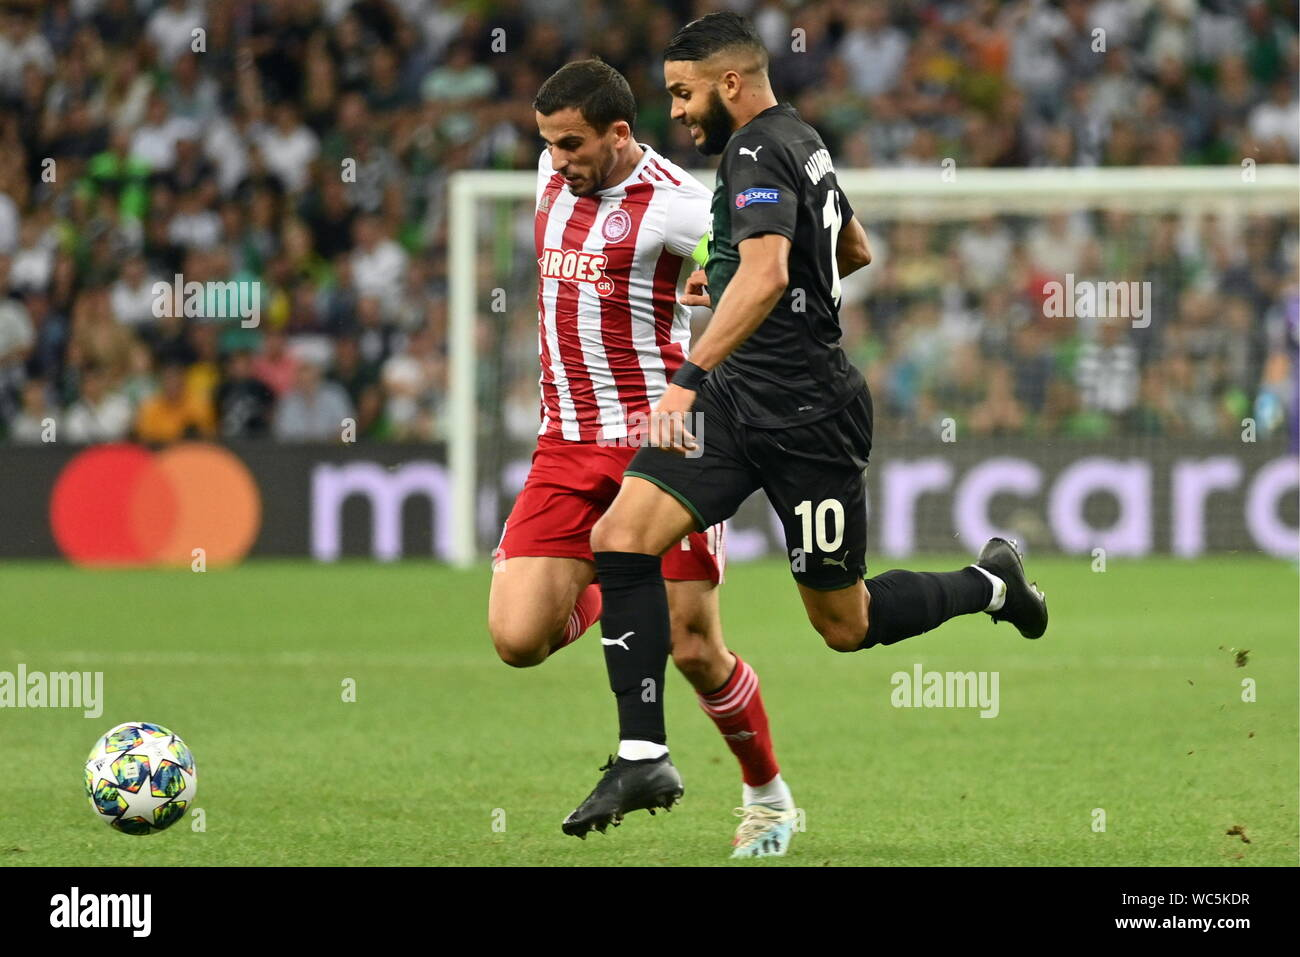 Krasnodar Russia 27th Aug 2019 Krasnodar Russia August 27 2019 Olympiacos Fc S Omar Elabdellaoui L And